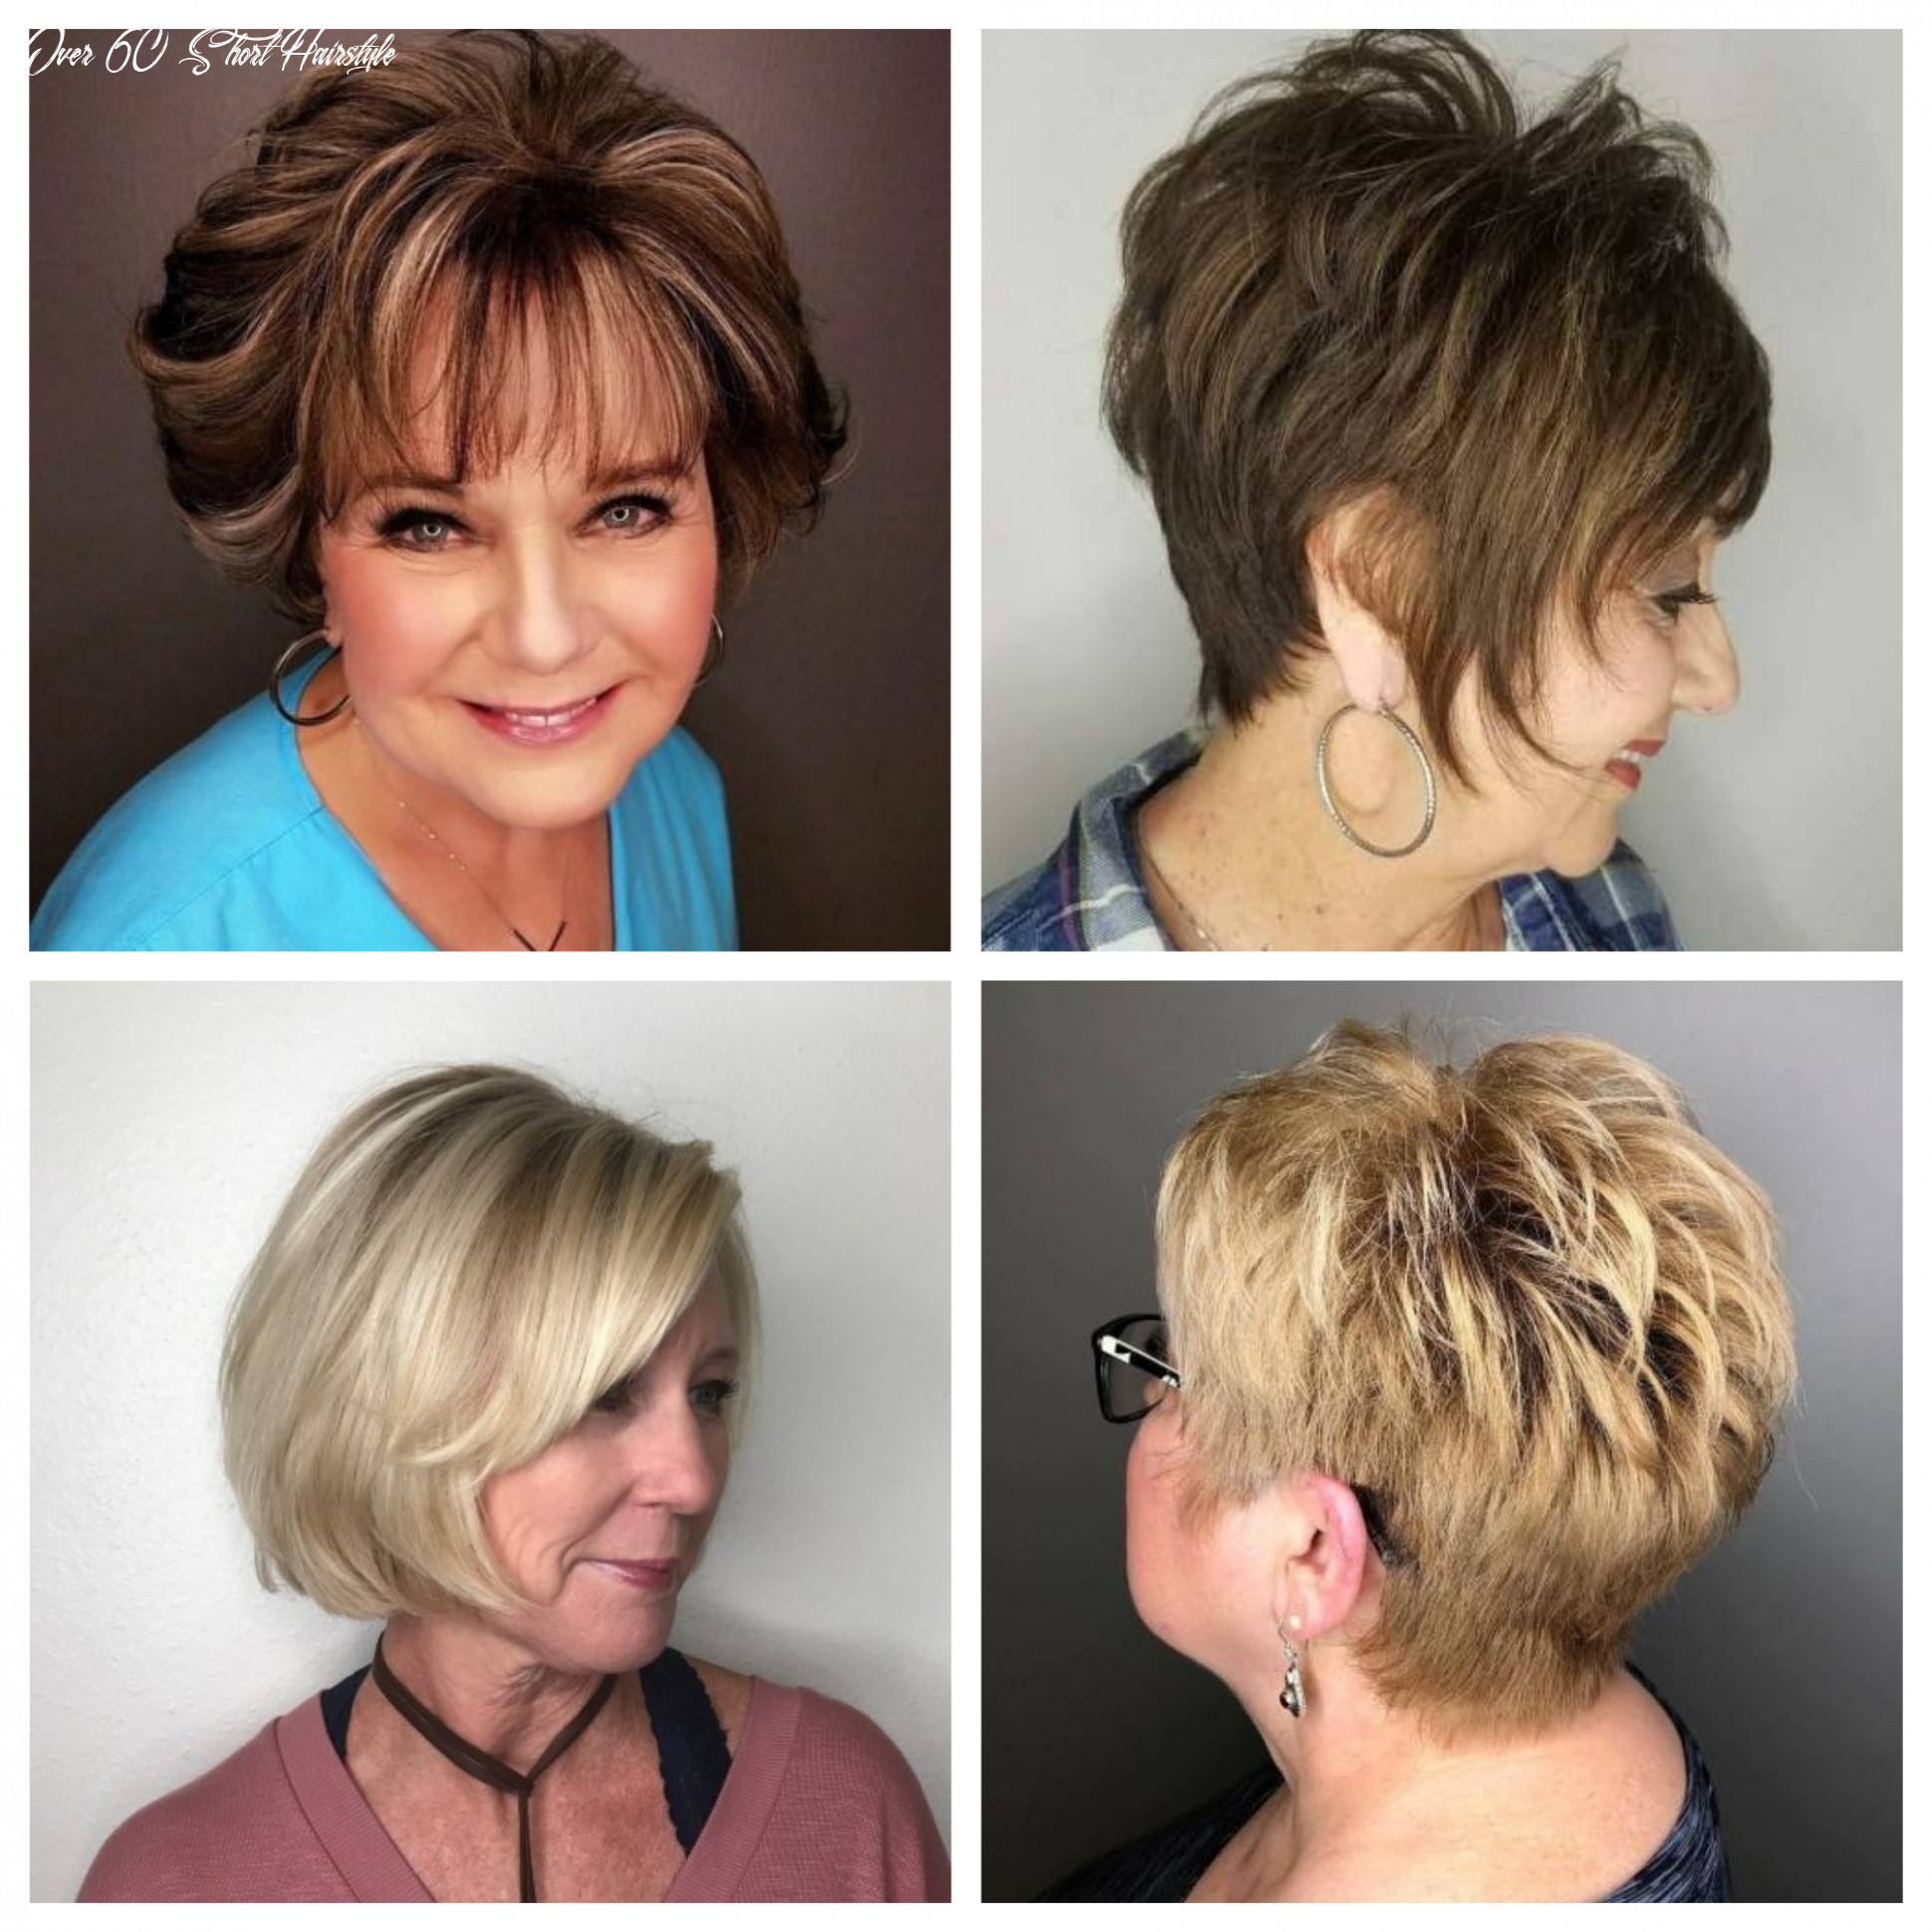 Short hairstyles for women over 10 | 10 haircuts, hairstyles and